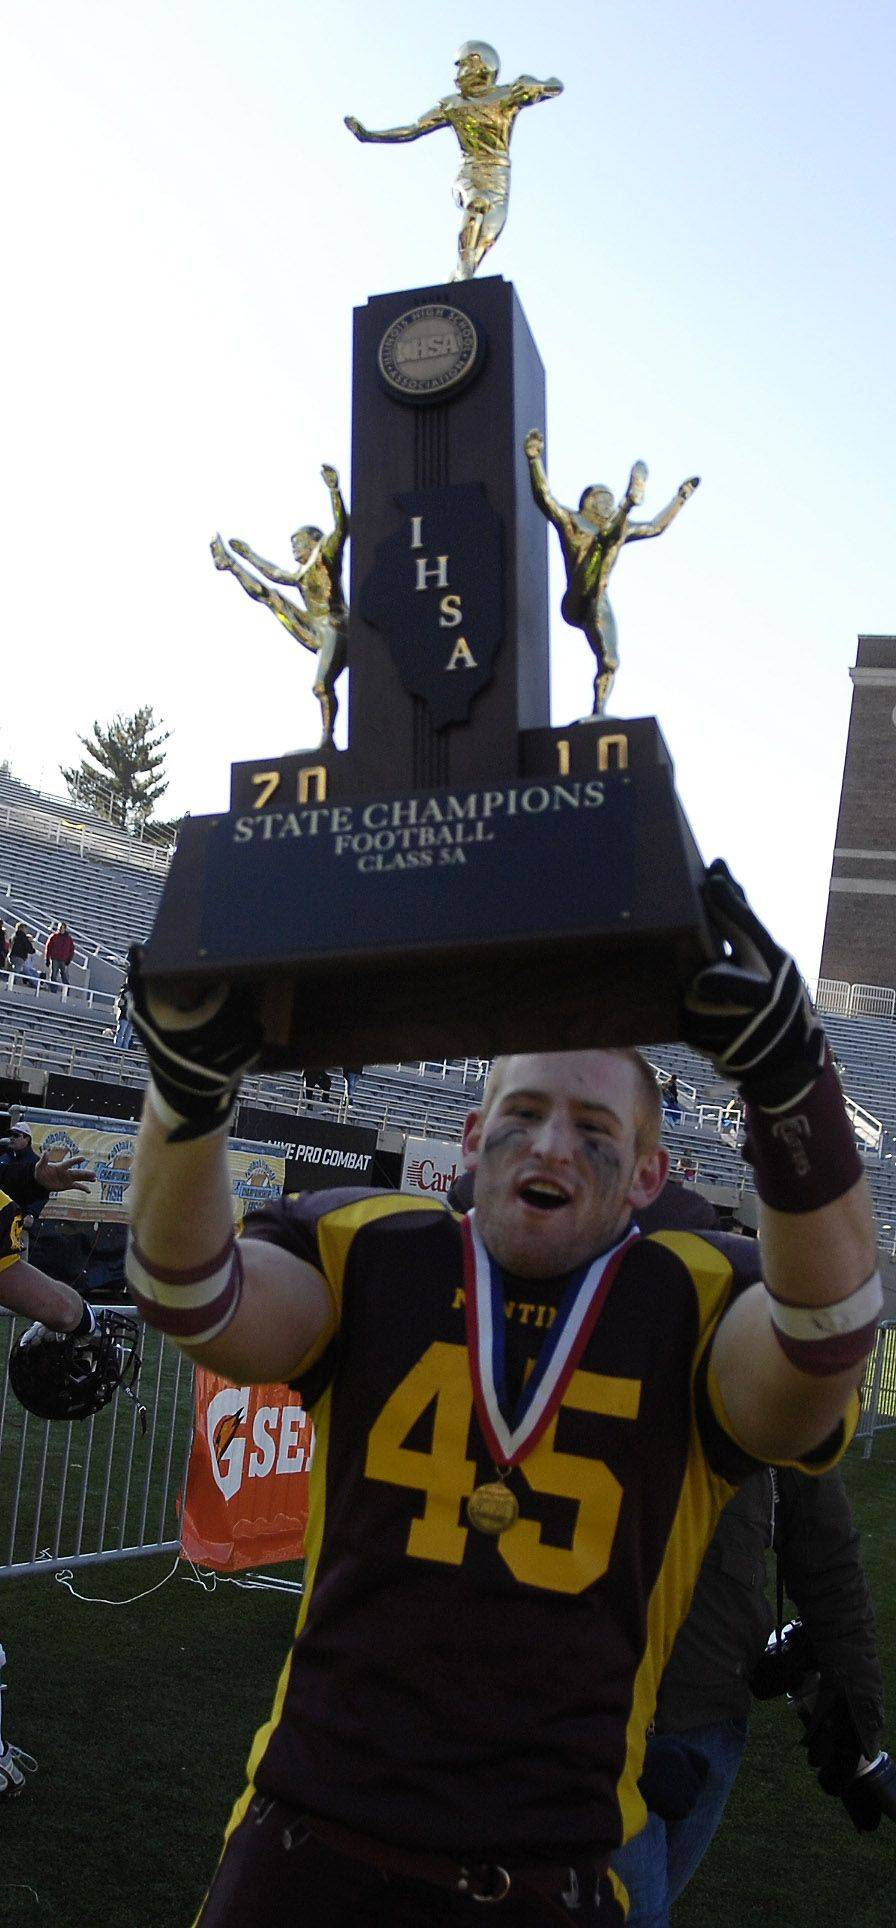 Montini's Alex Walters hoists the trophy following the Class 5A state championsip in Champaign Saturday.